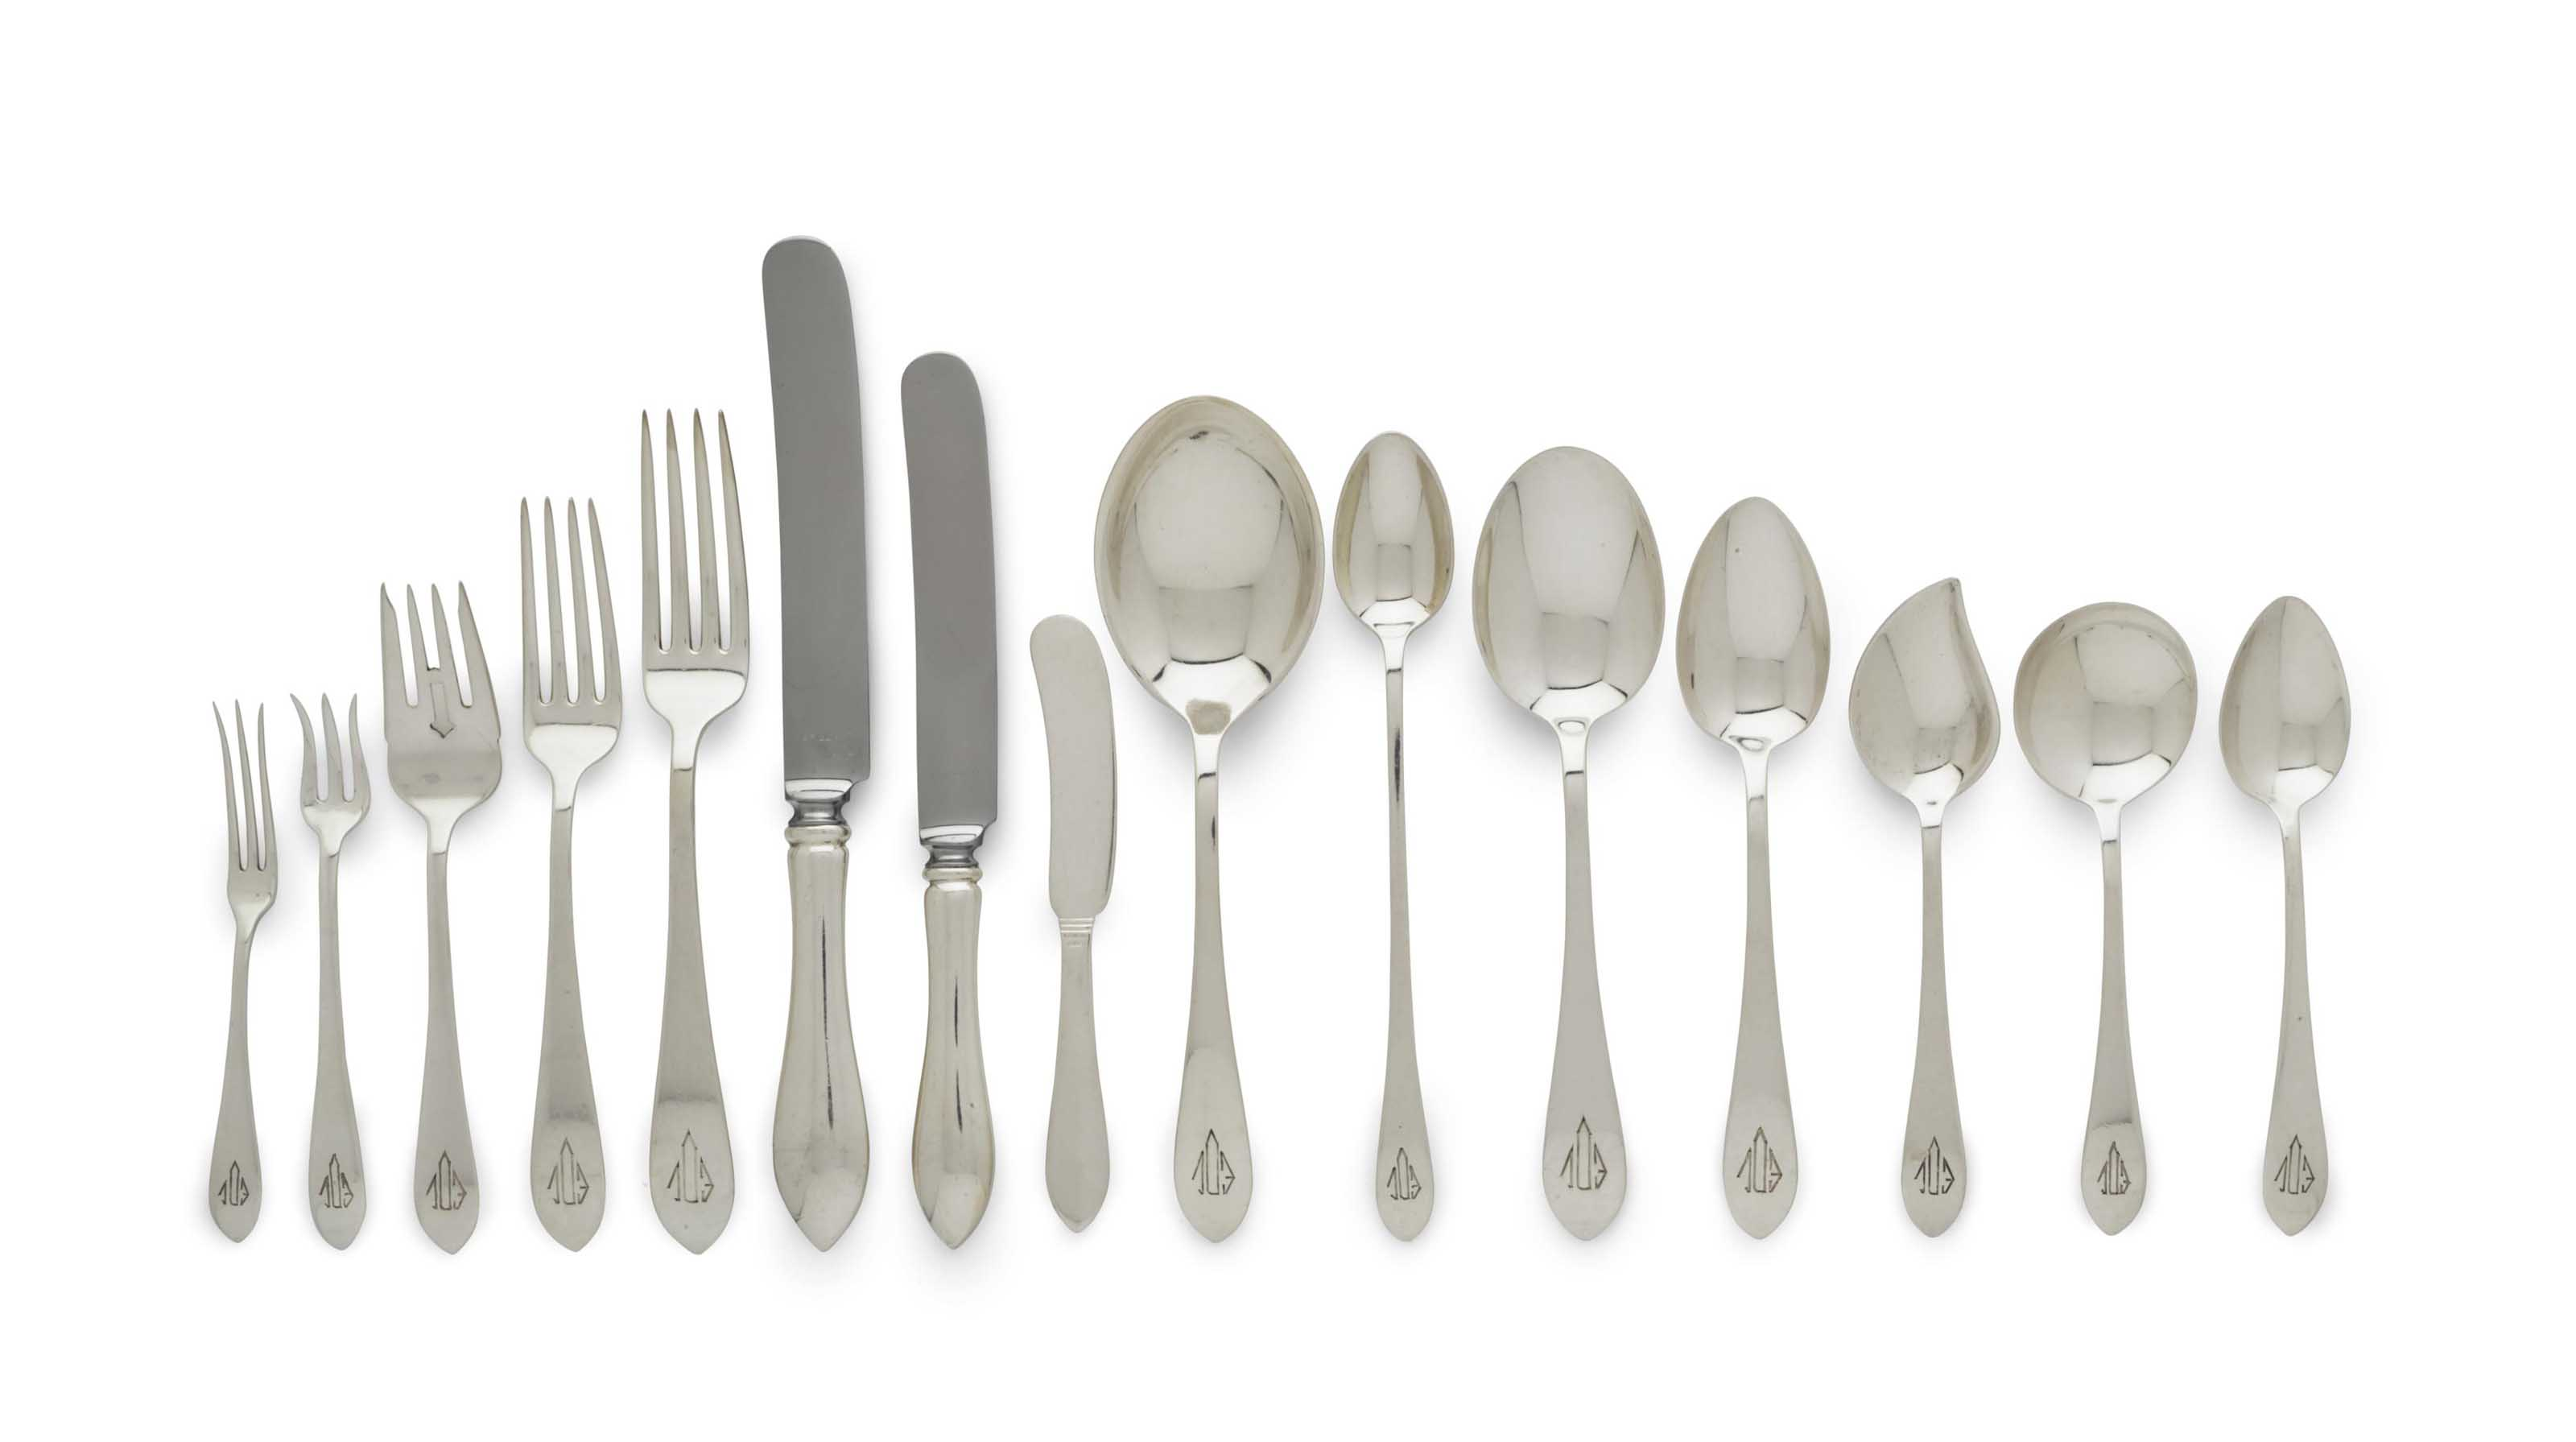 AN AMERICAN SILVER FLATWARE SERVICE MONOGRAMED 'EDL'